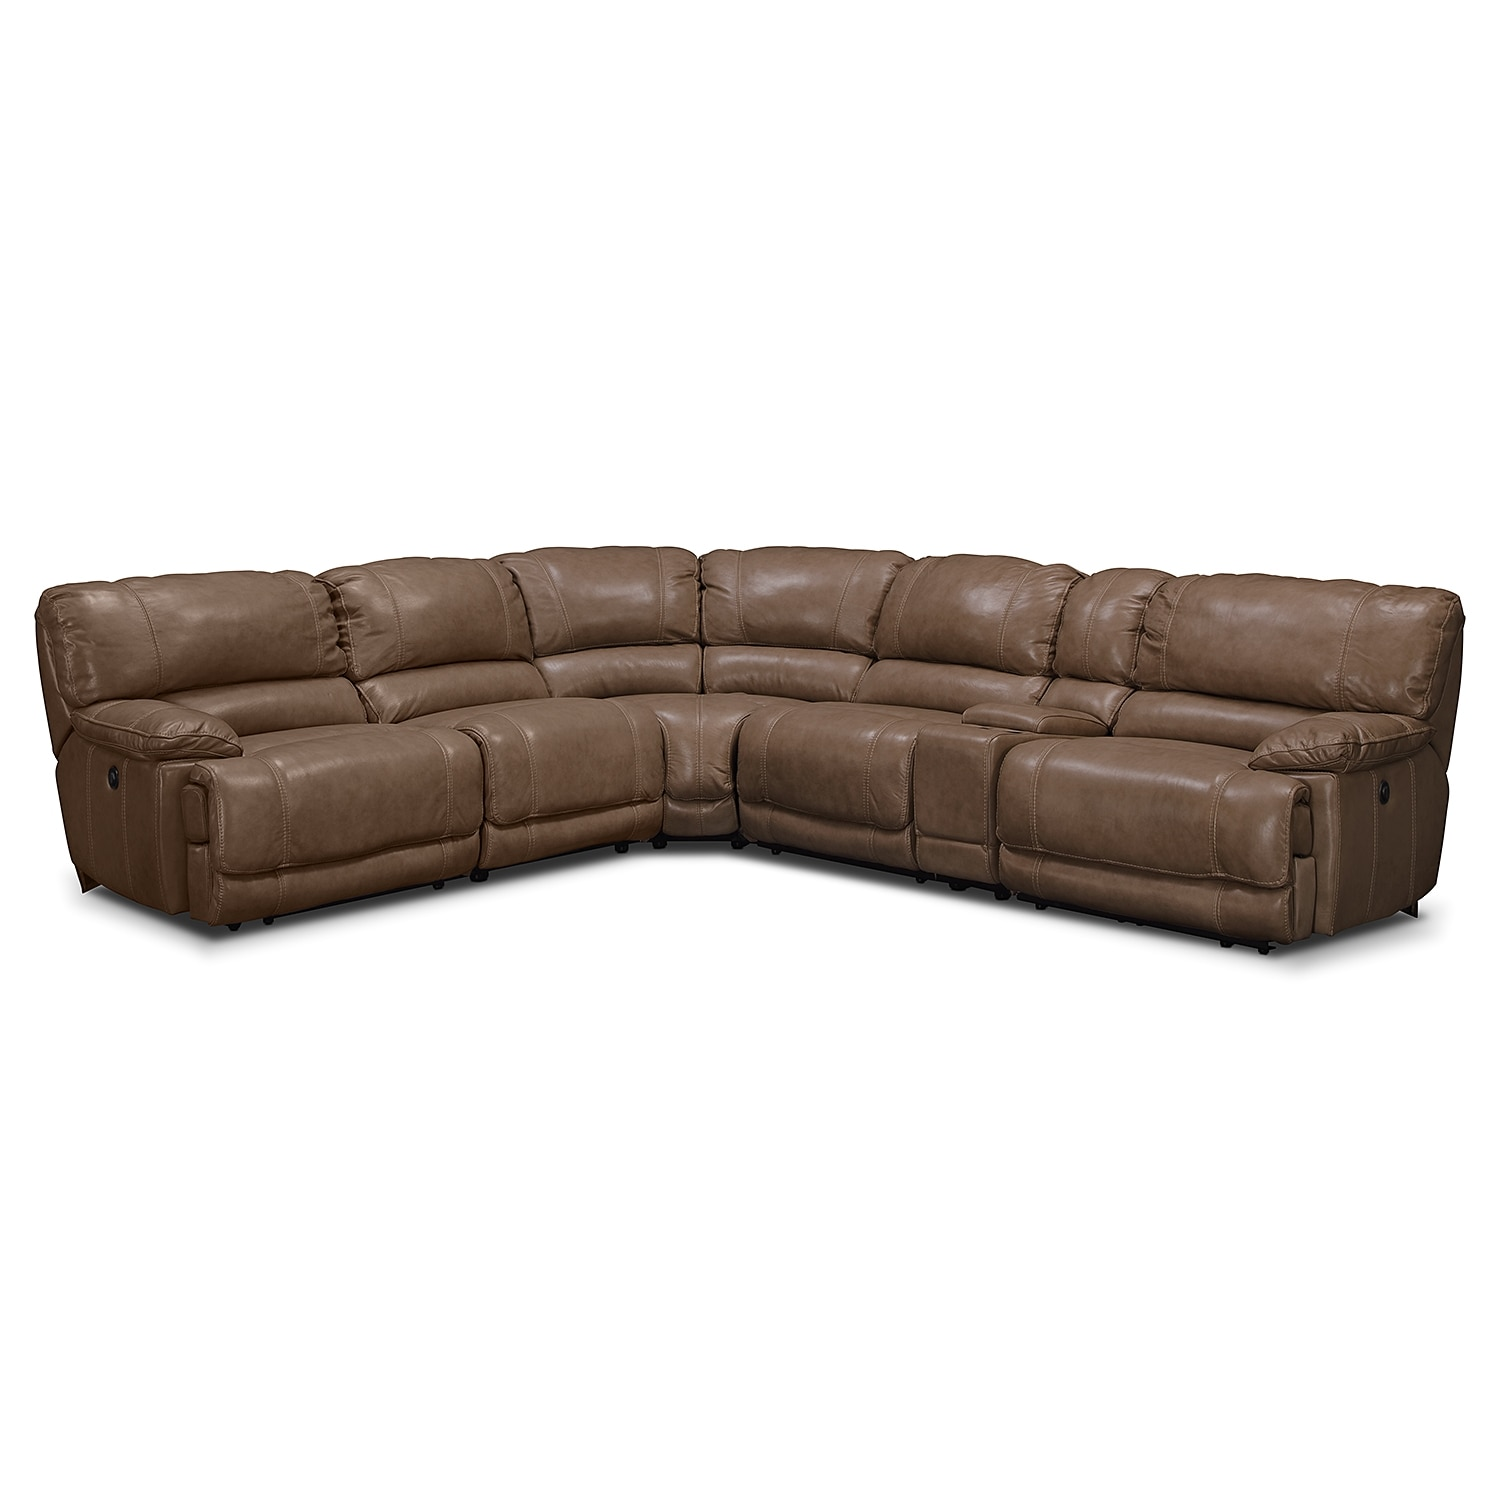 Living Room Furniture - St. Malo II 6 Pc. Power Reclining Sectional (Alternate)